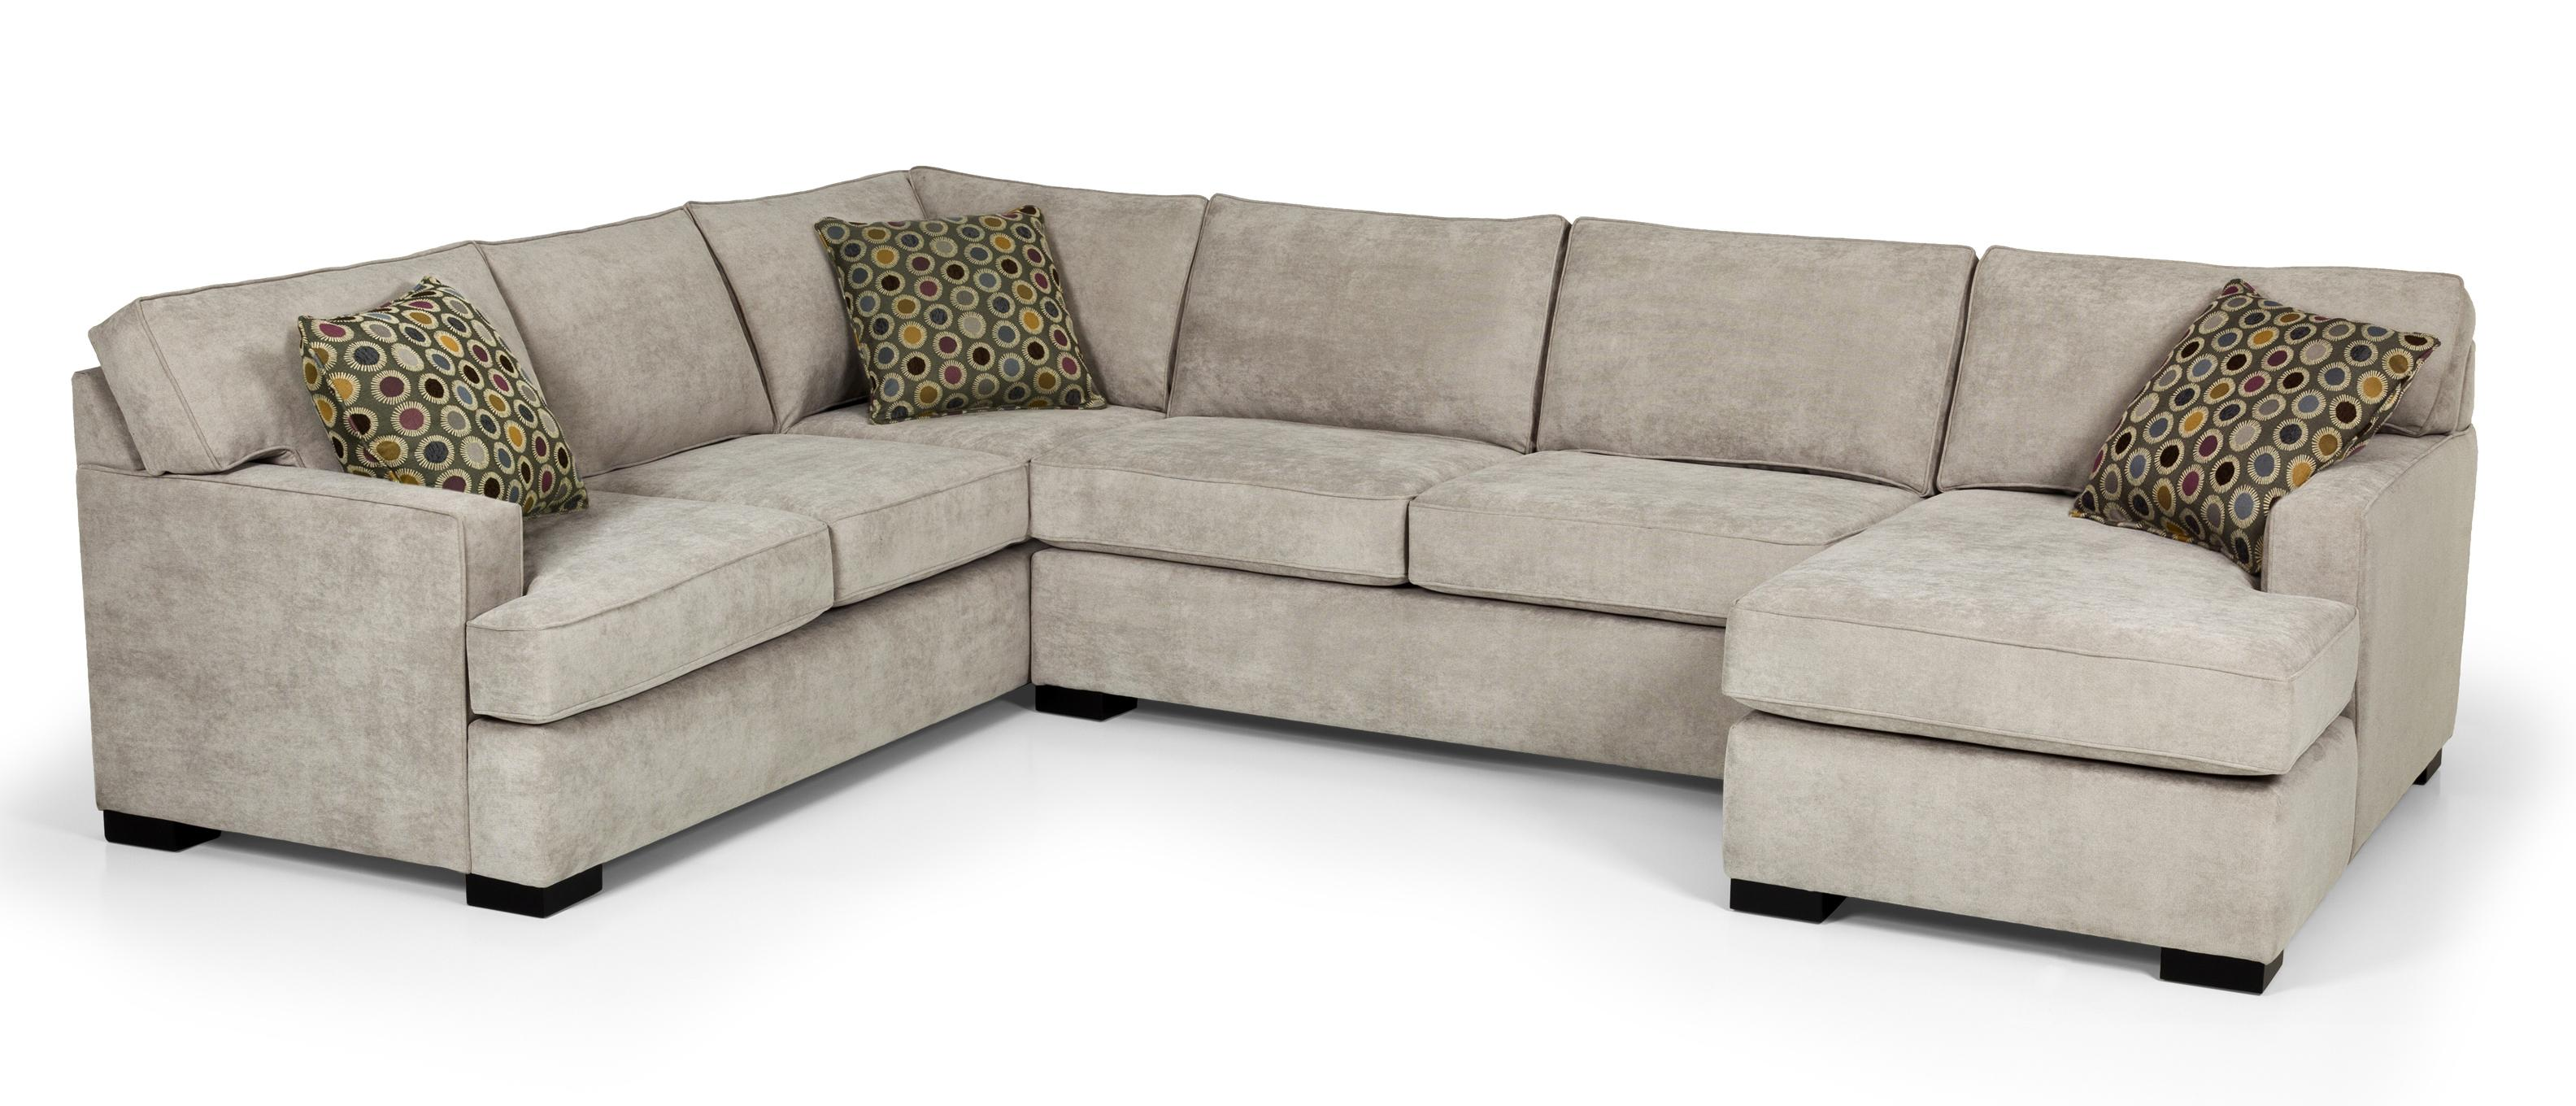 Stanton 146 Four Piece Sectional Sofa w/ LAF Chaise - Item Number: 146-12+146-41+146-23+146-21